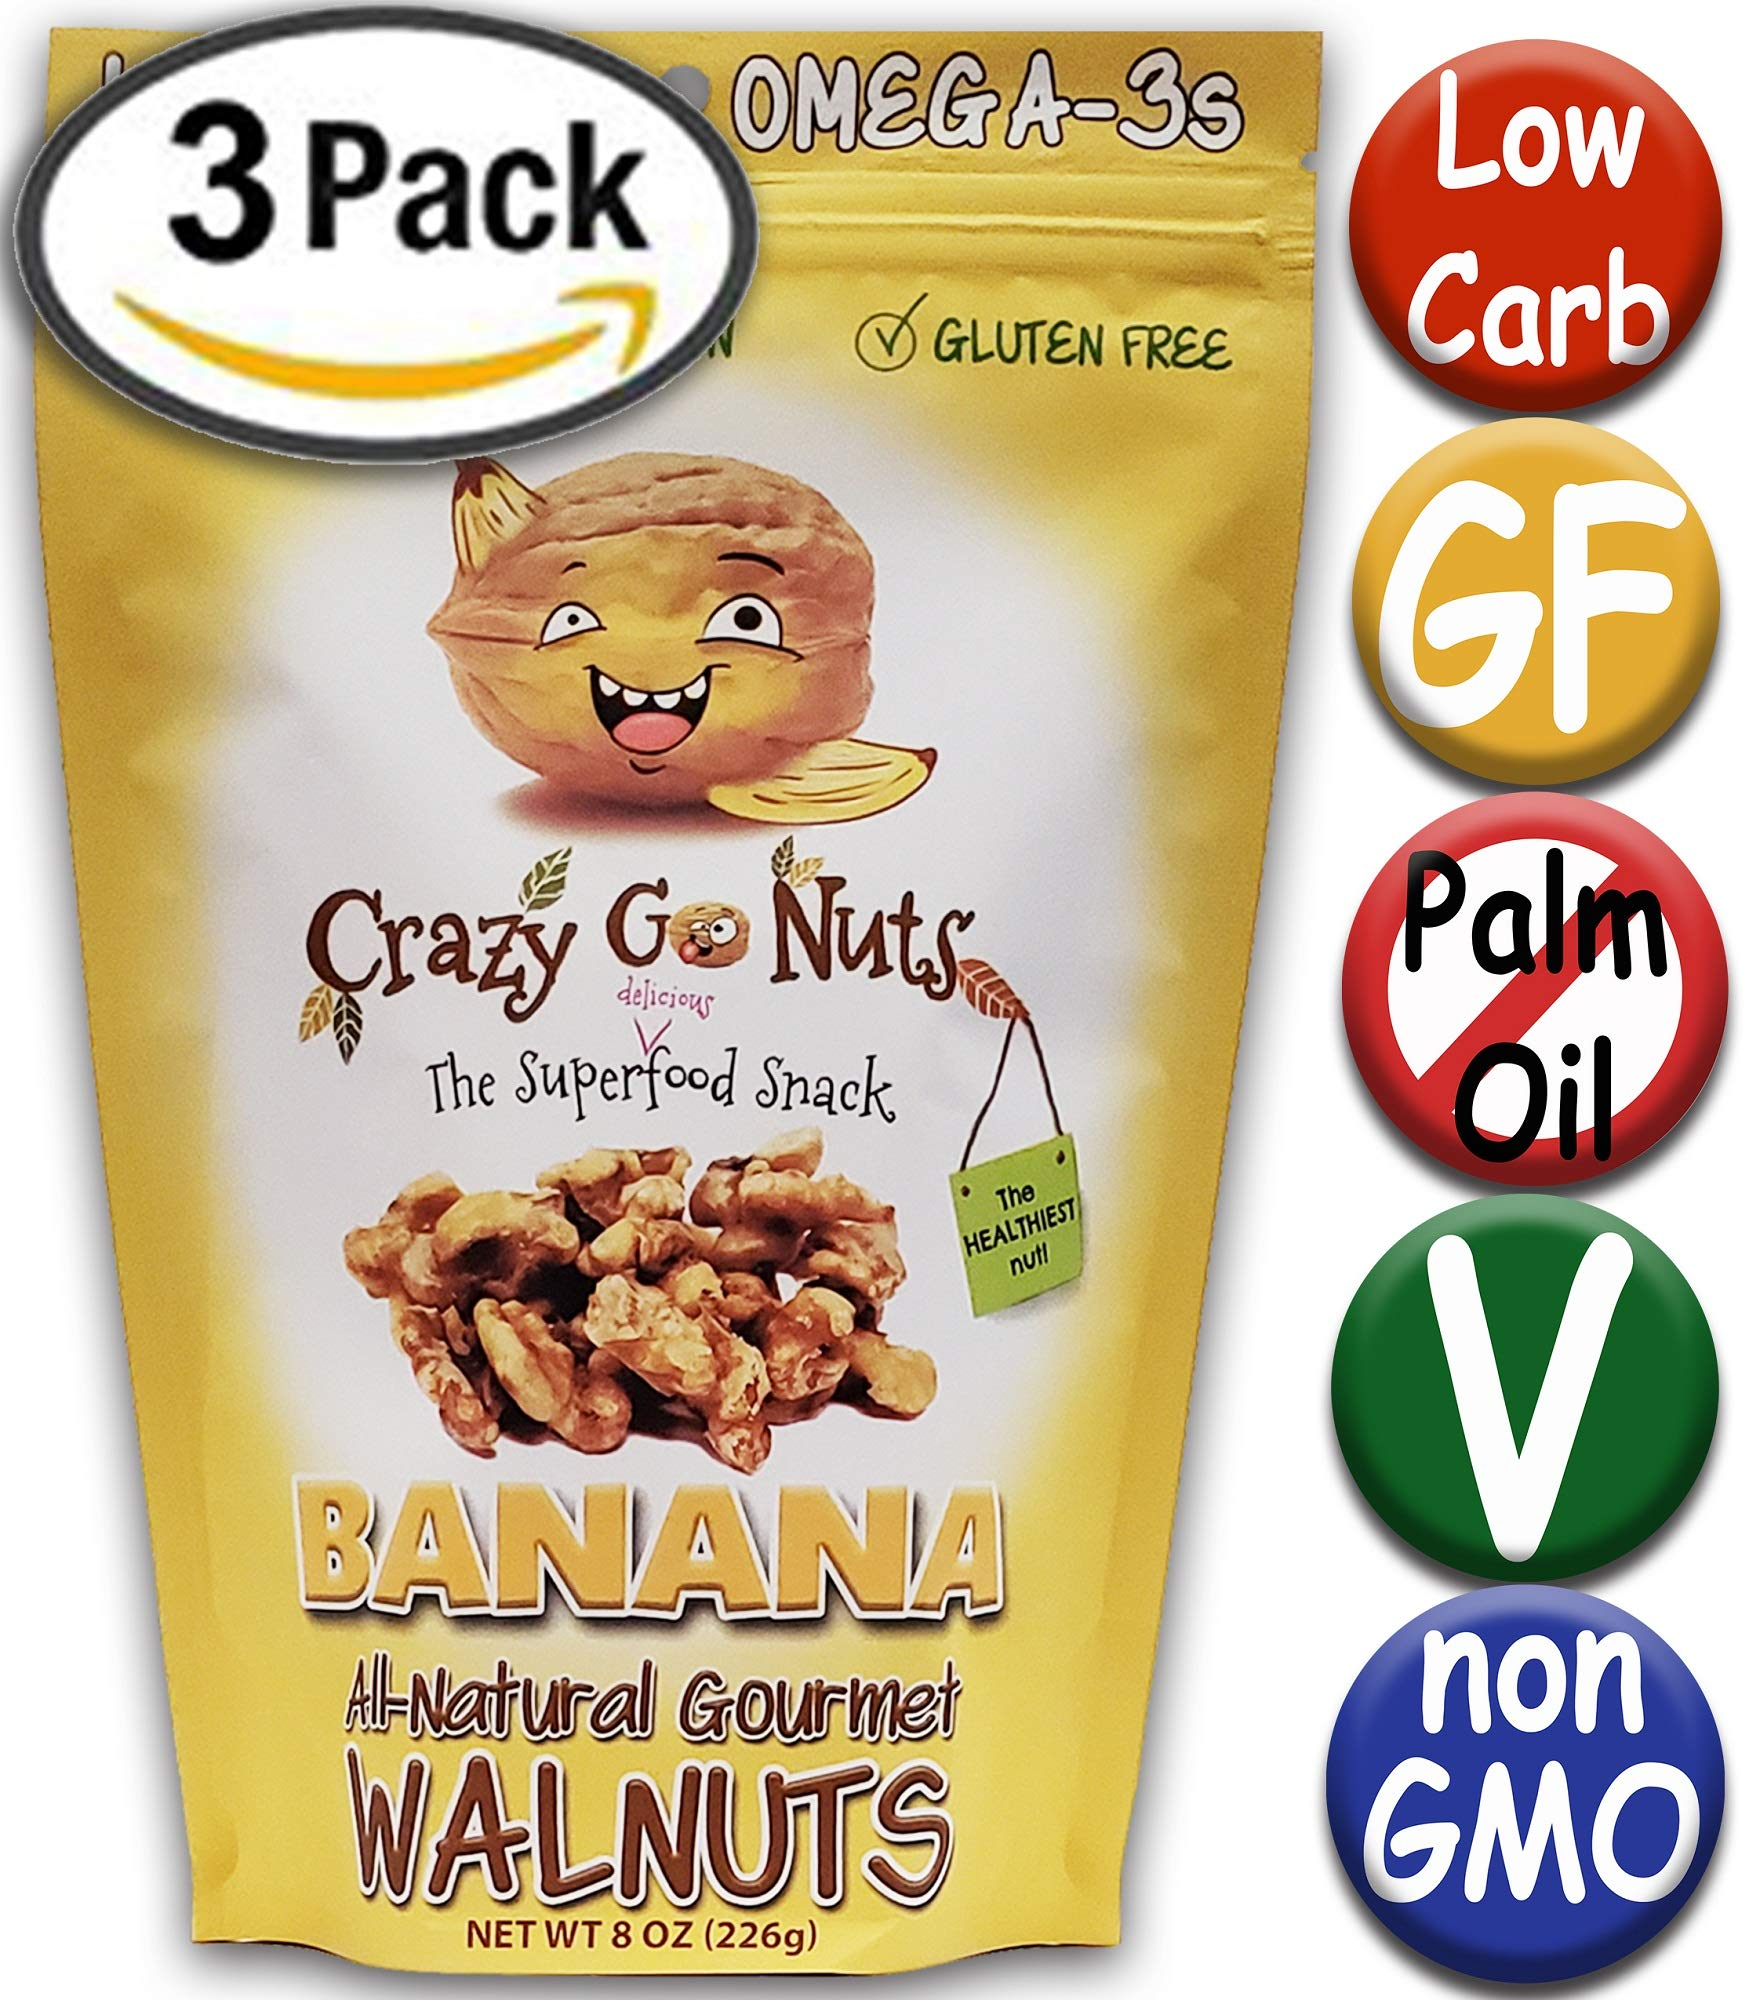 Crazy Go Nuts Flavored Walnuts & Healthy Snacks: Gluten Free, Vegan, Non GMO, 8oz 3 pack - Banana by Crazy Go Nuts